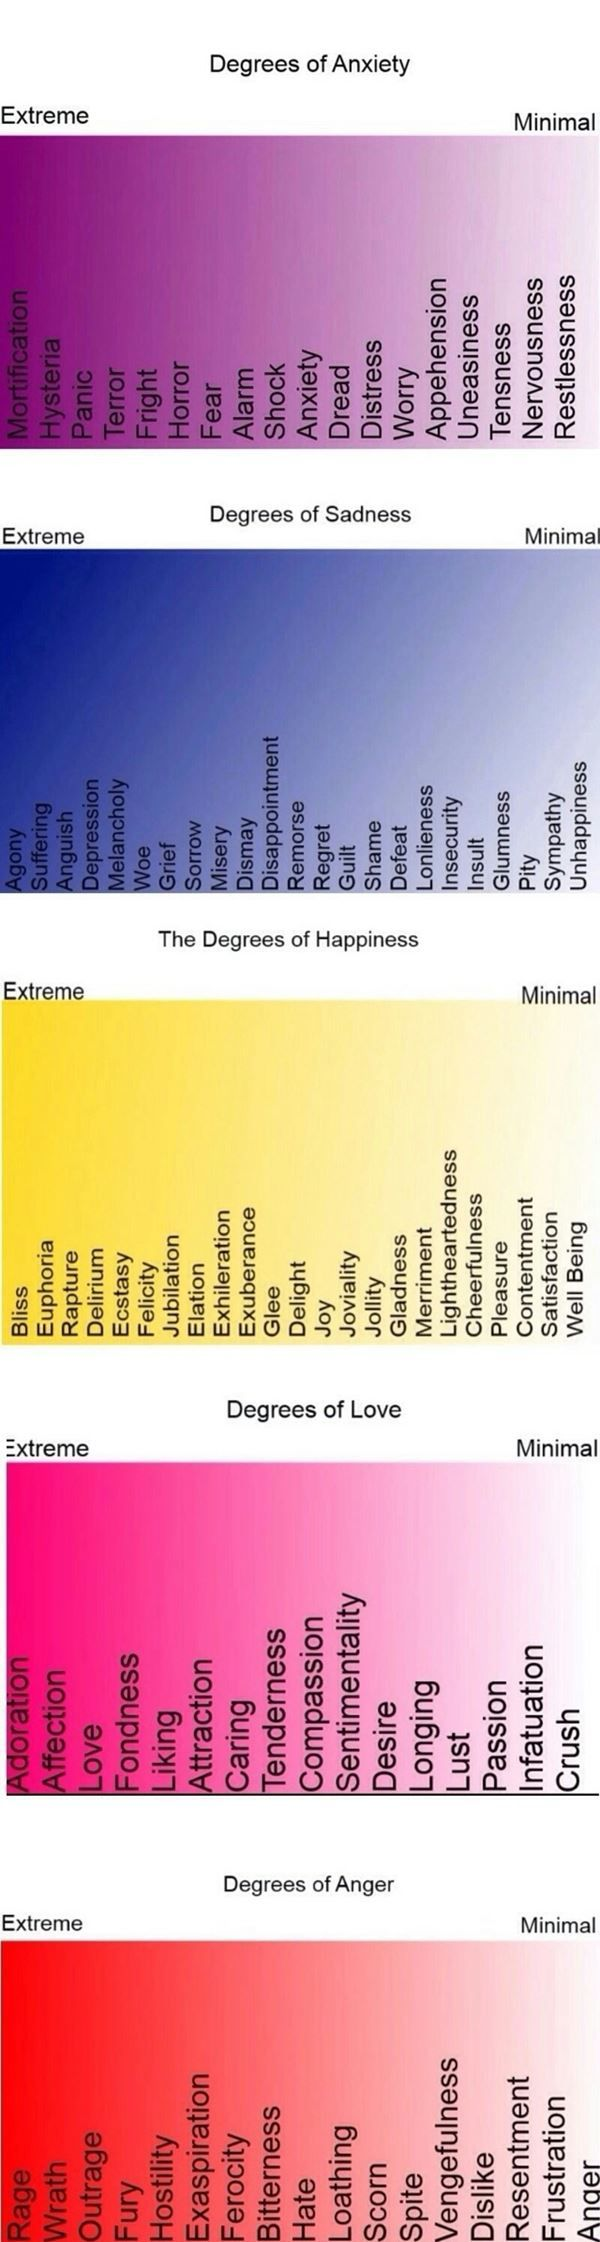 Degrees of different emotions